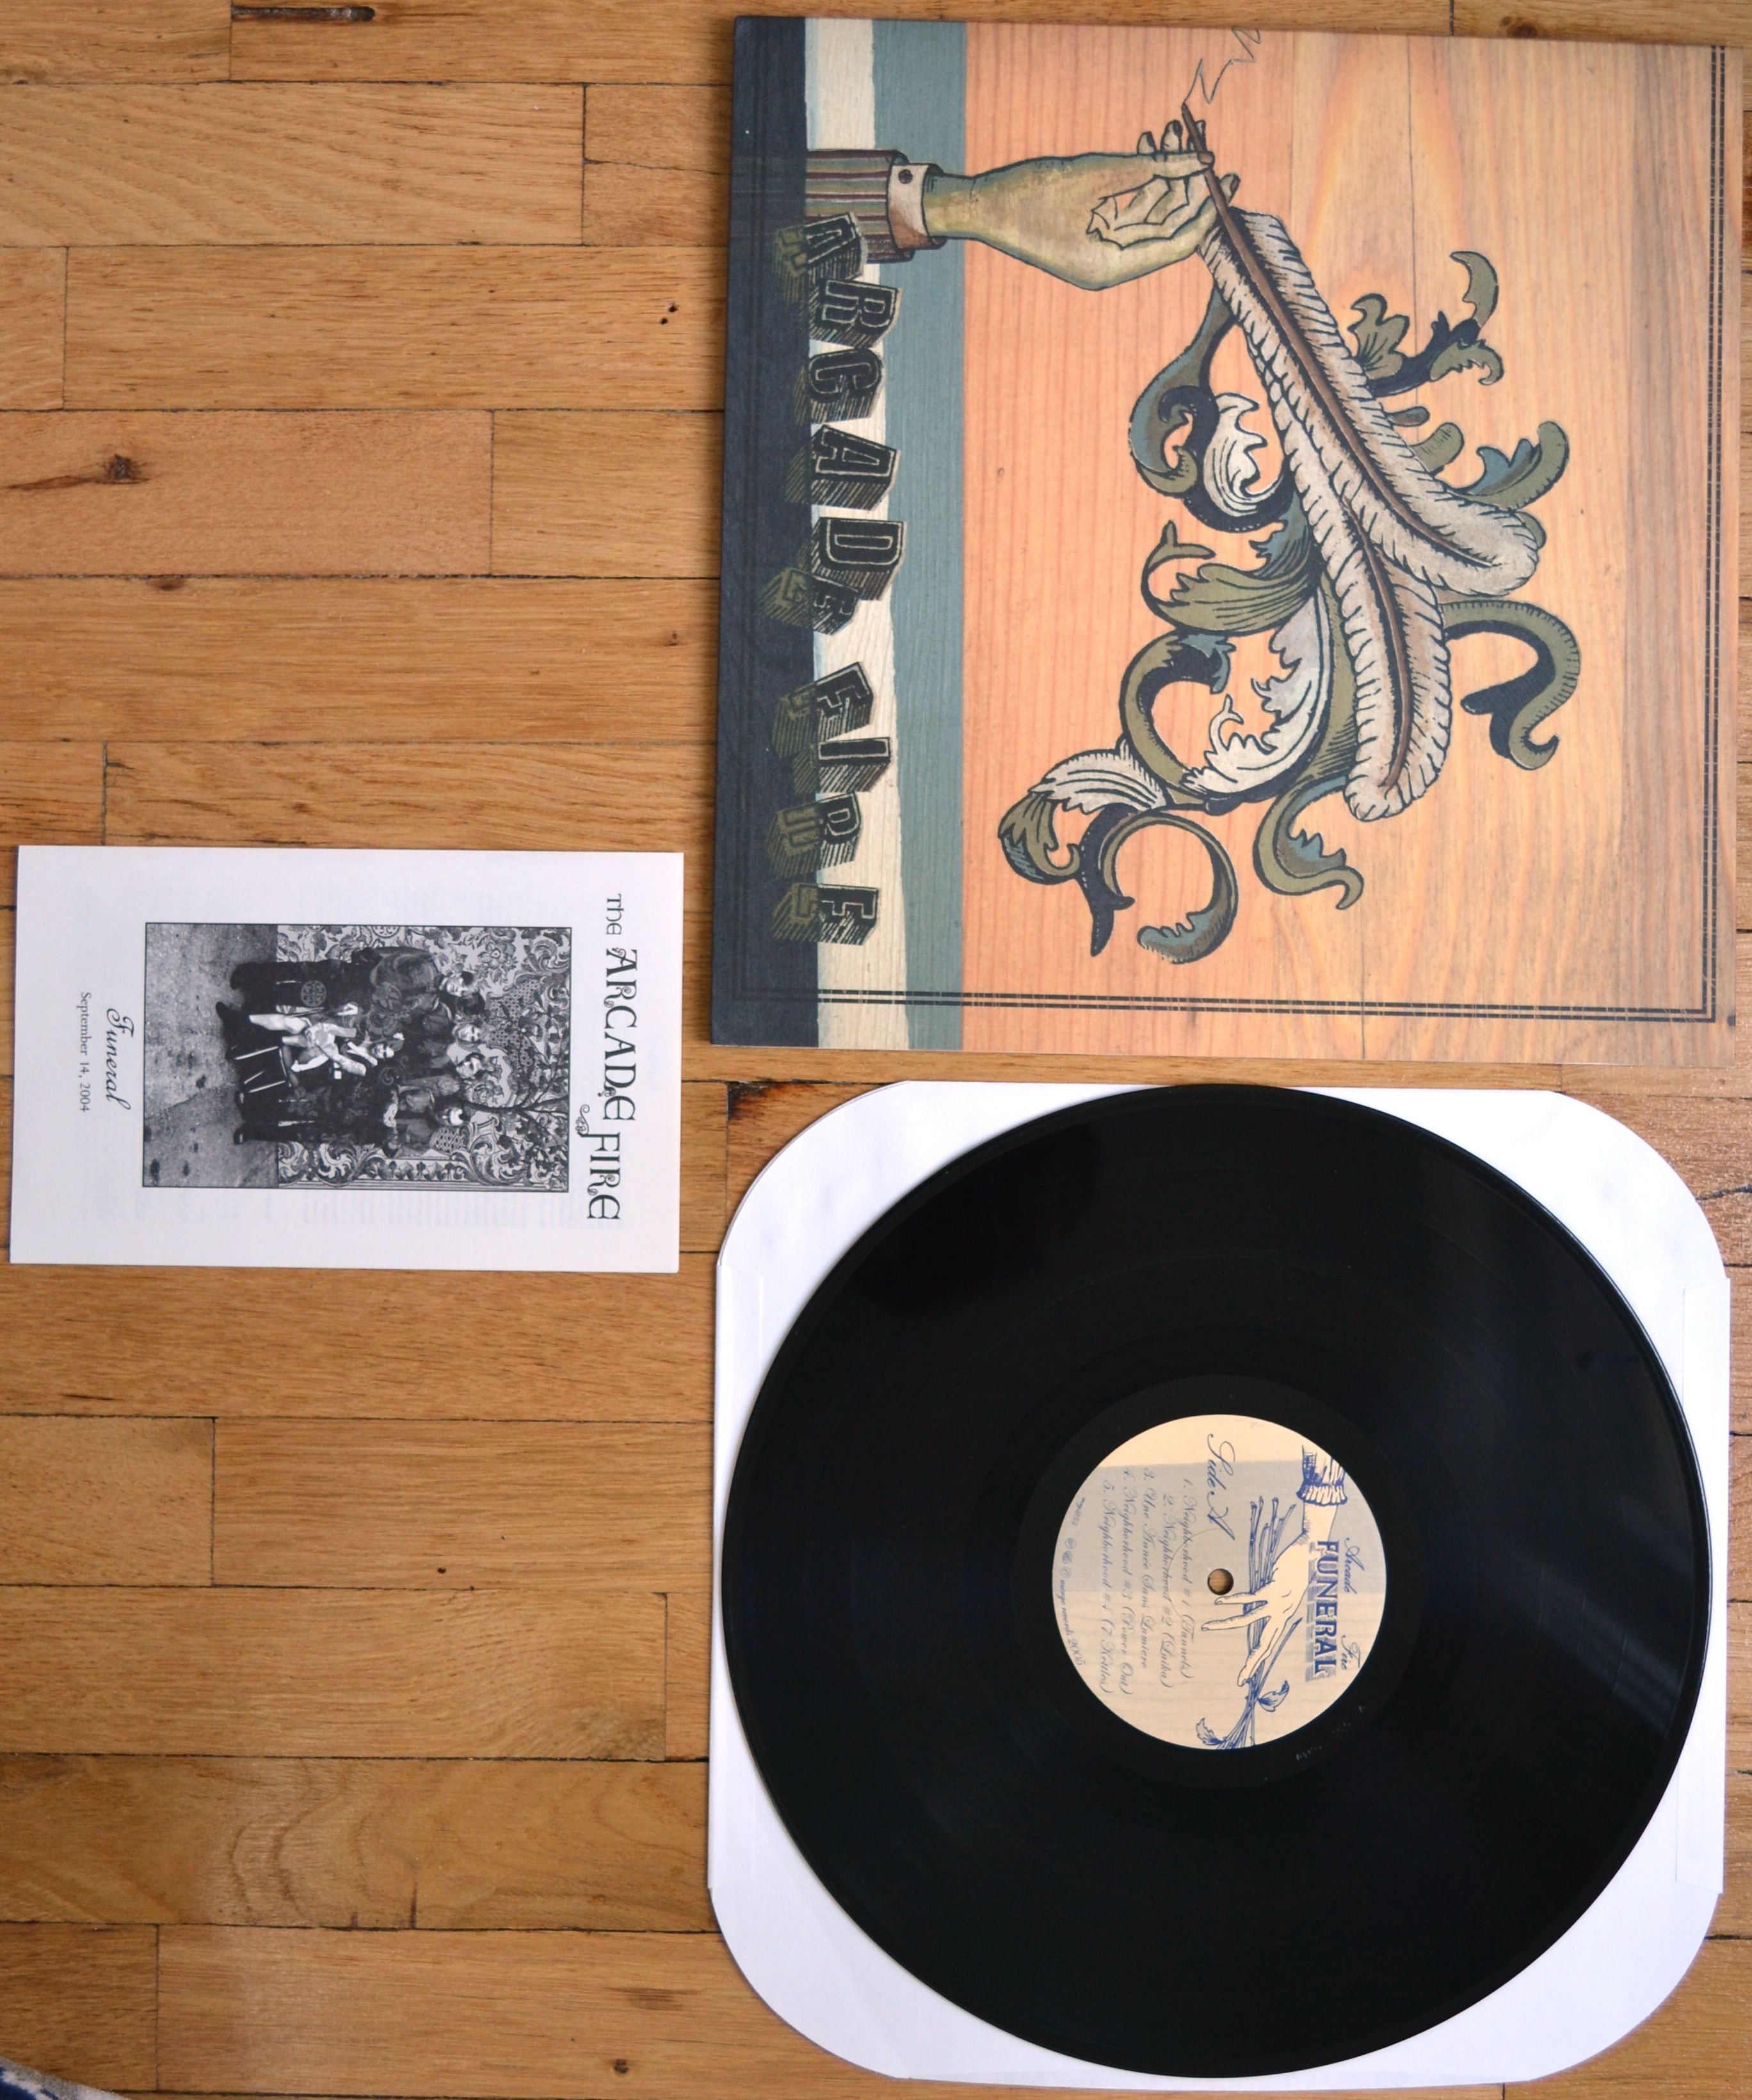 2005 Album By The Arcade Fire Comes On 180 Gram Black Vinyl In An Embossed Gatefold Jacket Vinyl And Jacket In Nm Condition Trackli Arcade Fire Vinyl Arcade